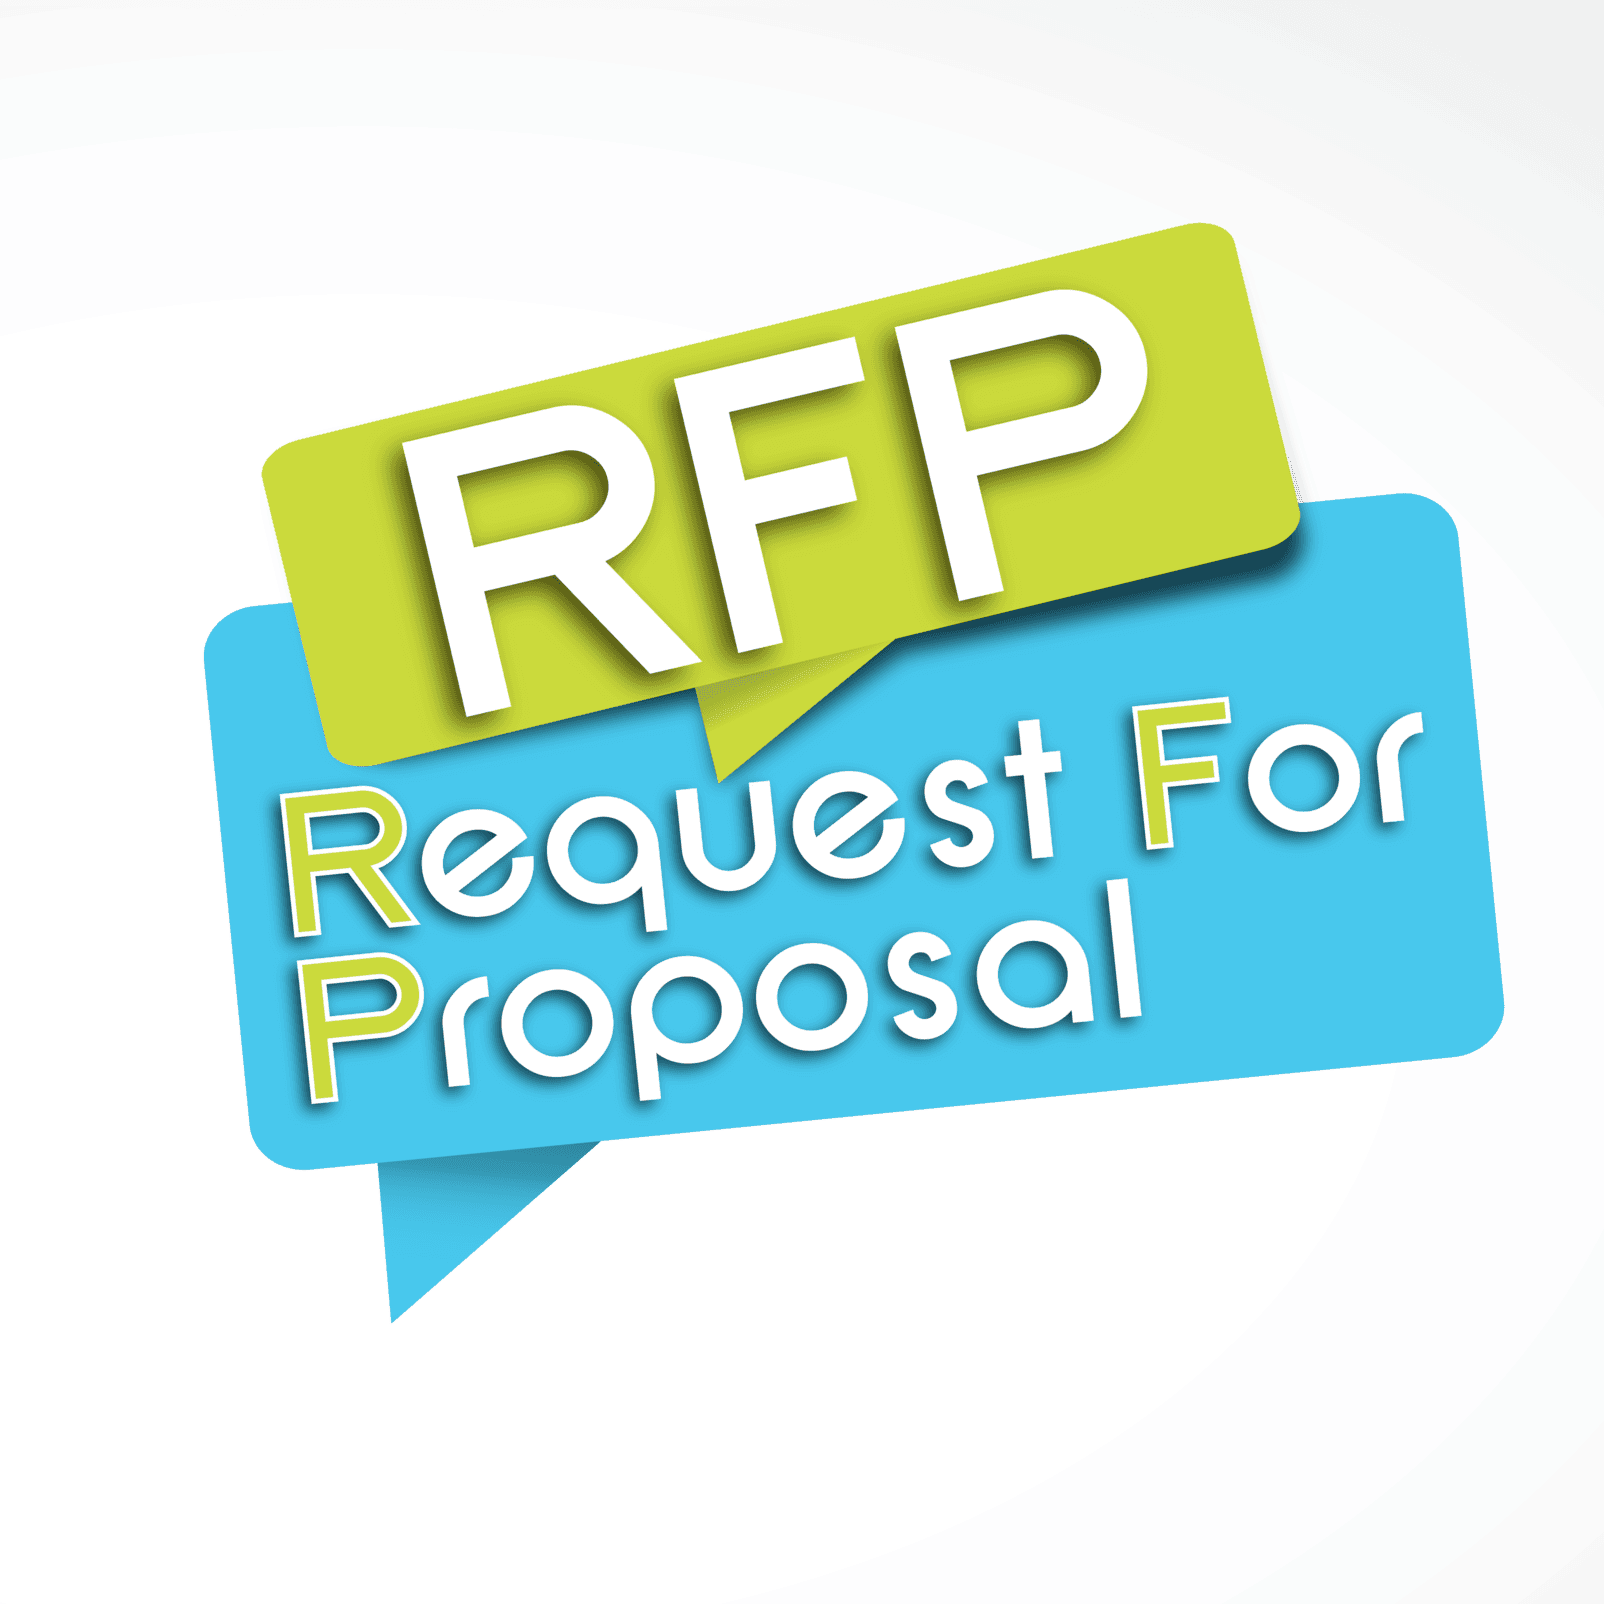 Request for Proposal Megaphone Graphic